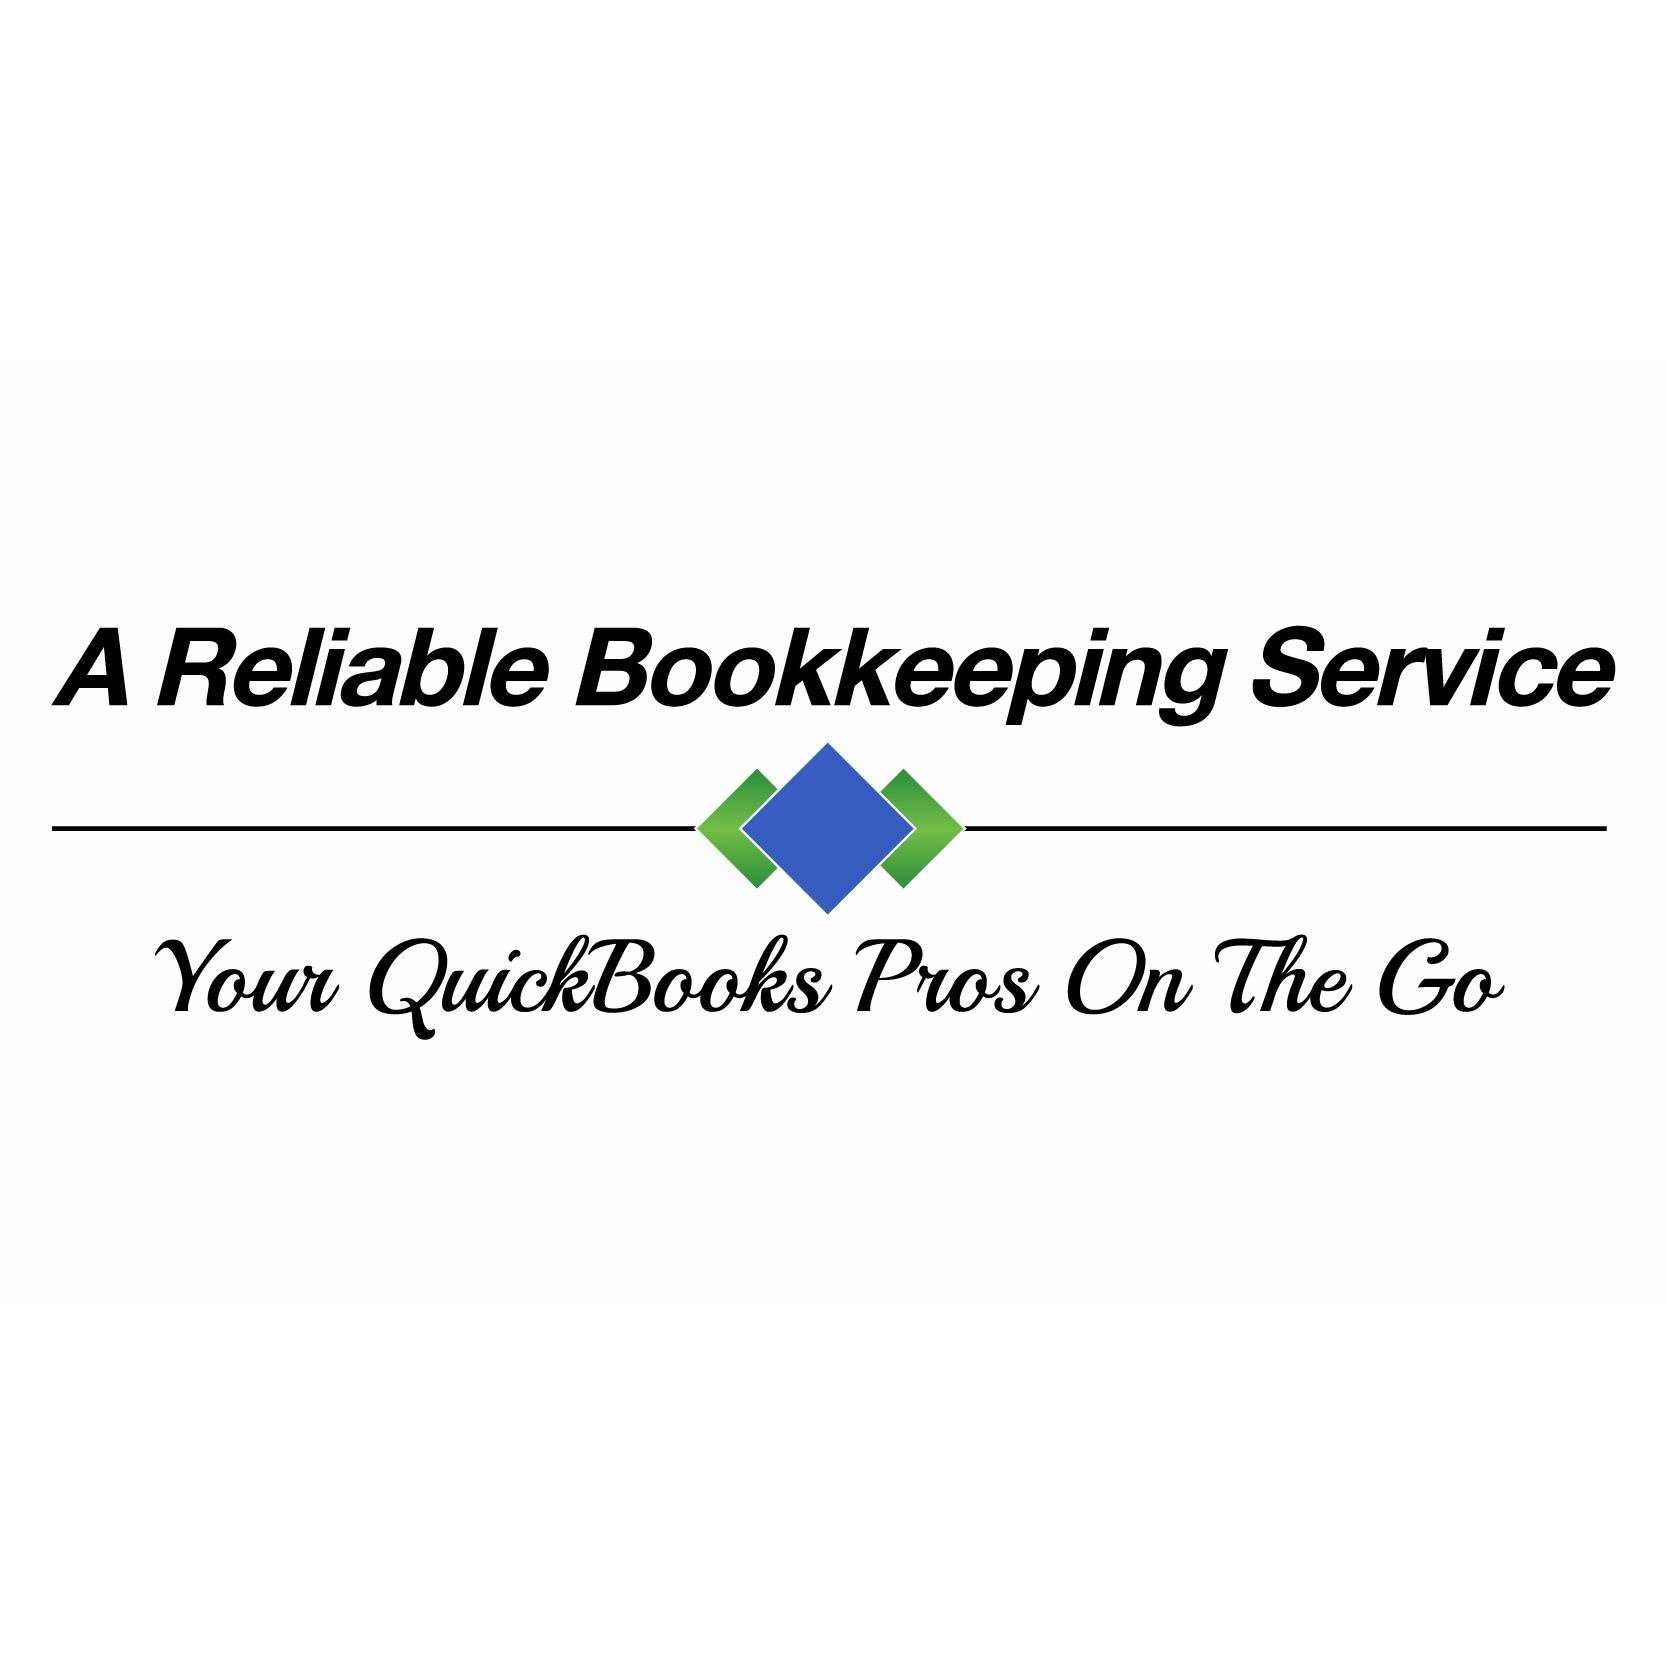 A Reliable Bookkeeping Service - Campbell, CA - Bookkeeping Services